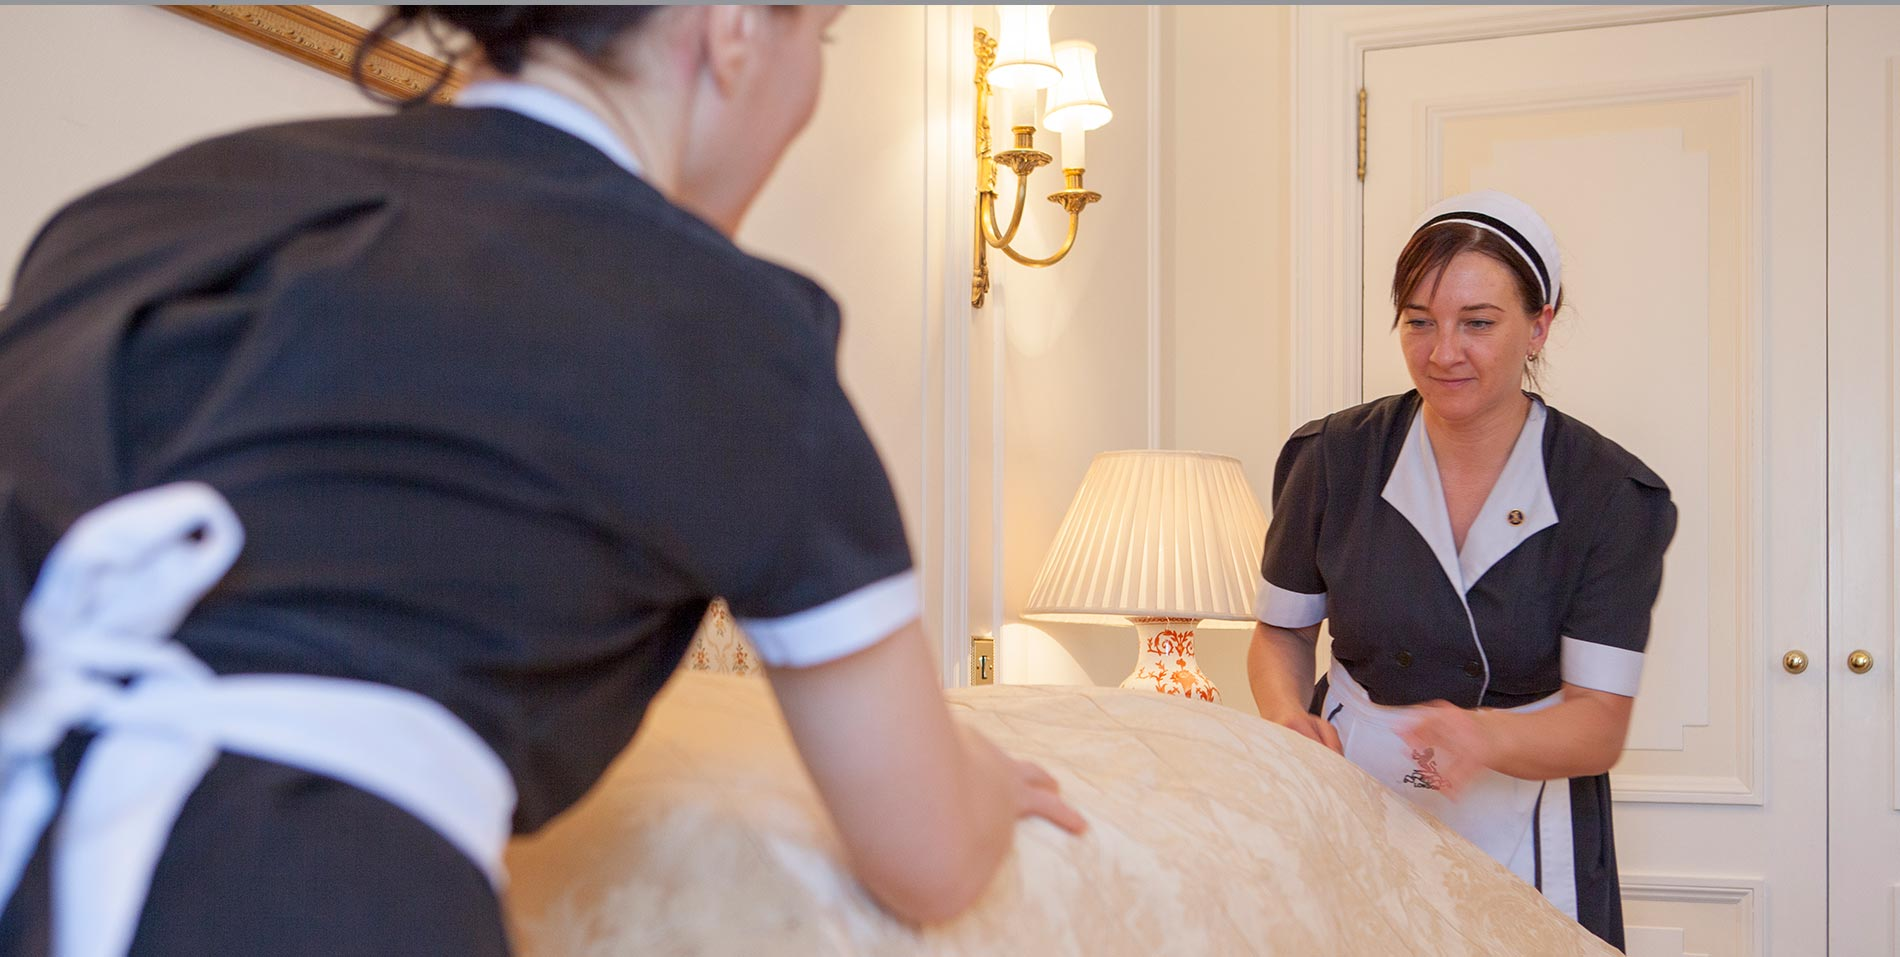 Housekeepers at The Ritz